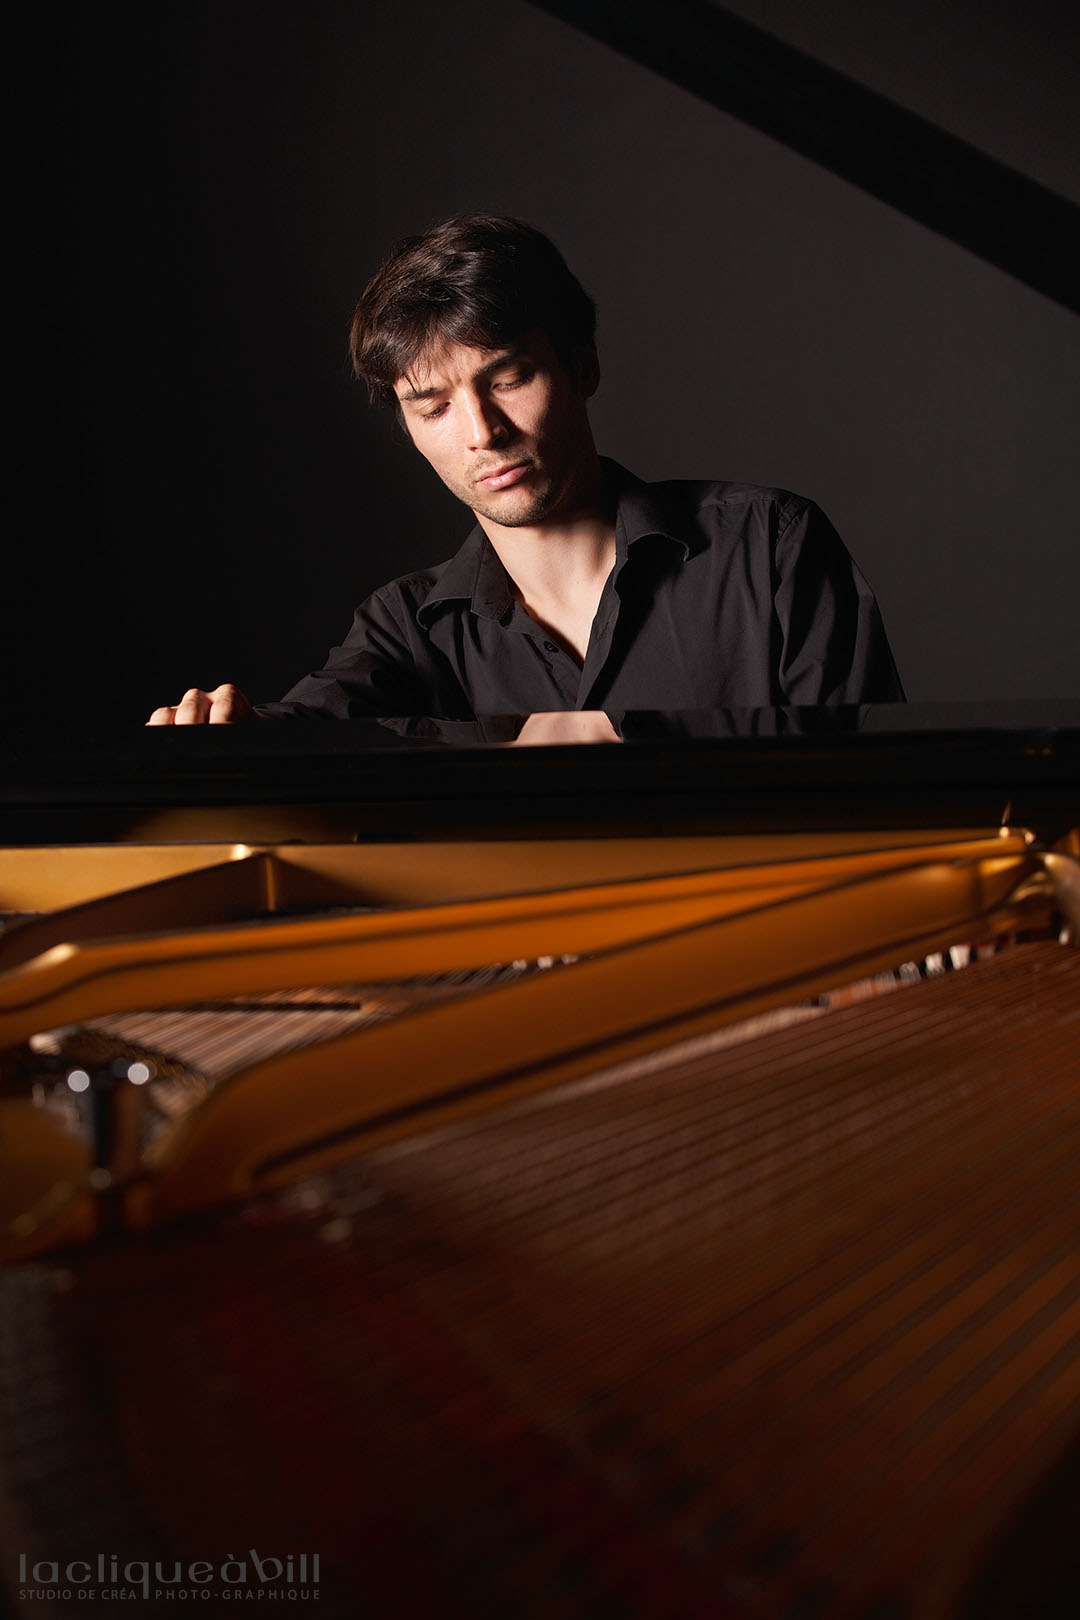 Hugues Chabert au piano